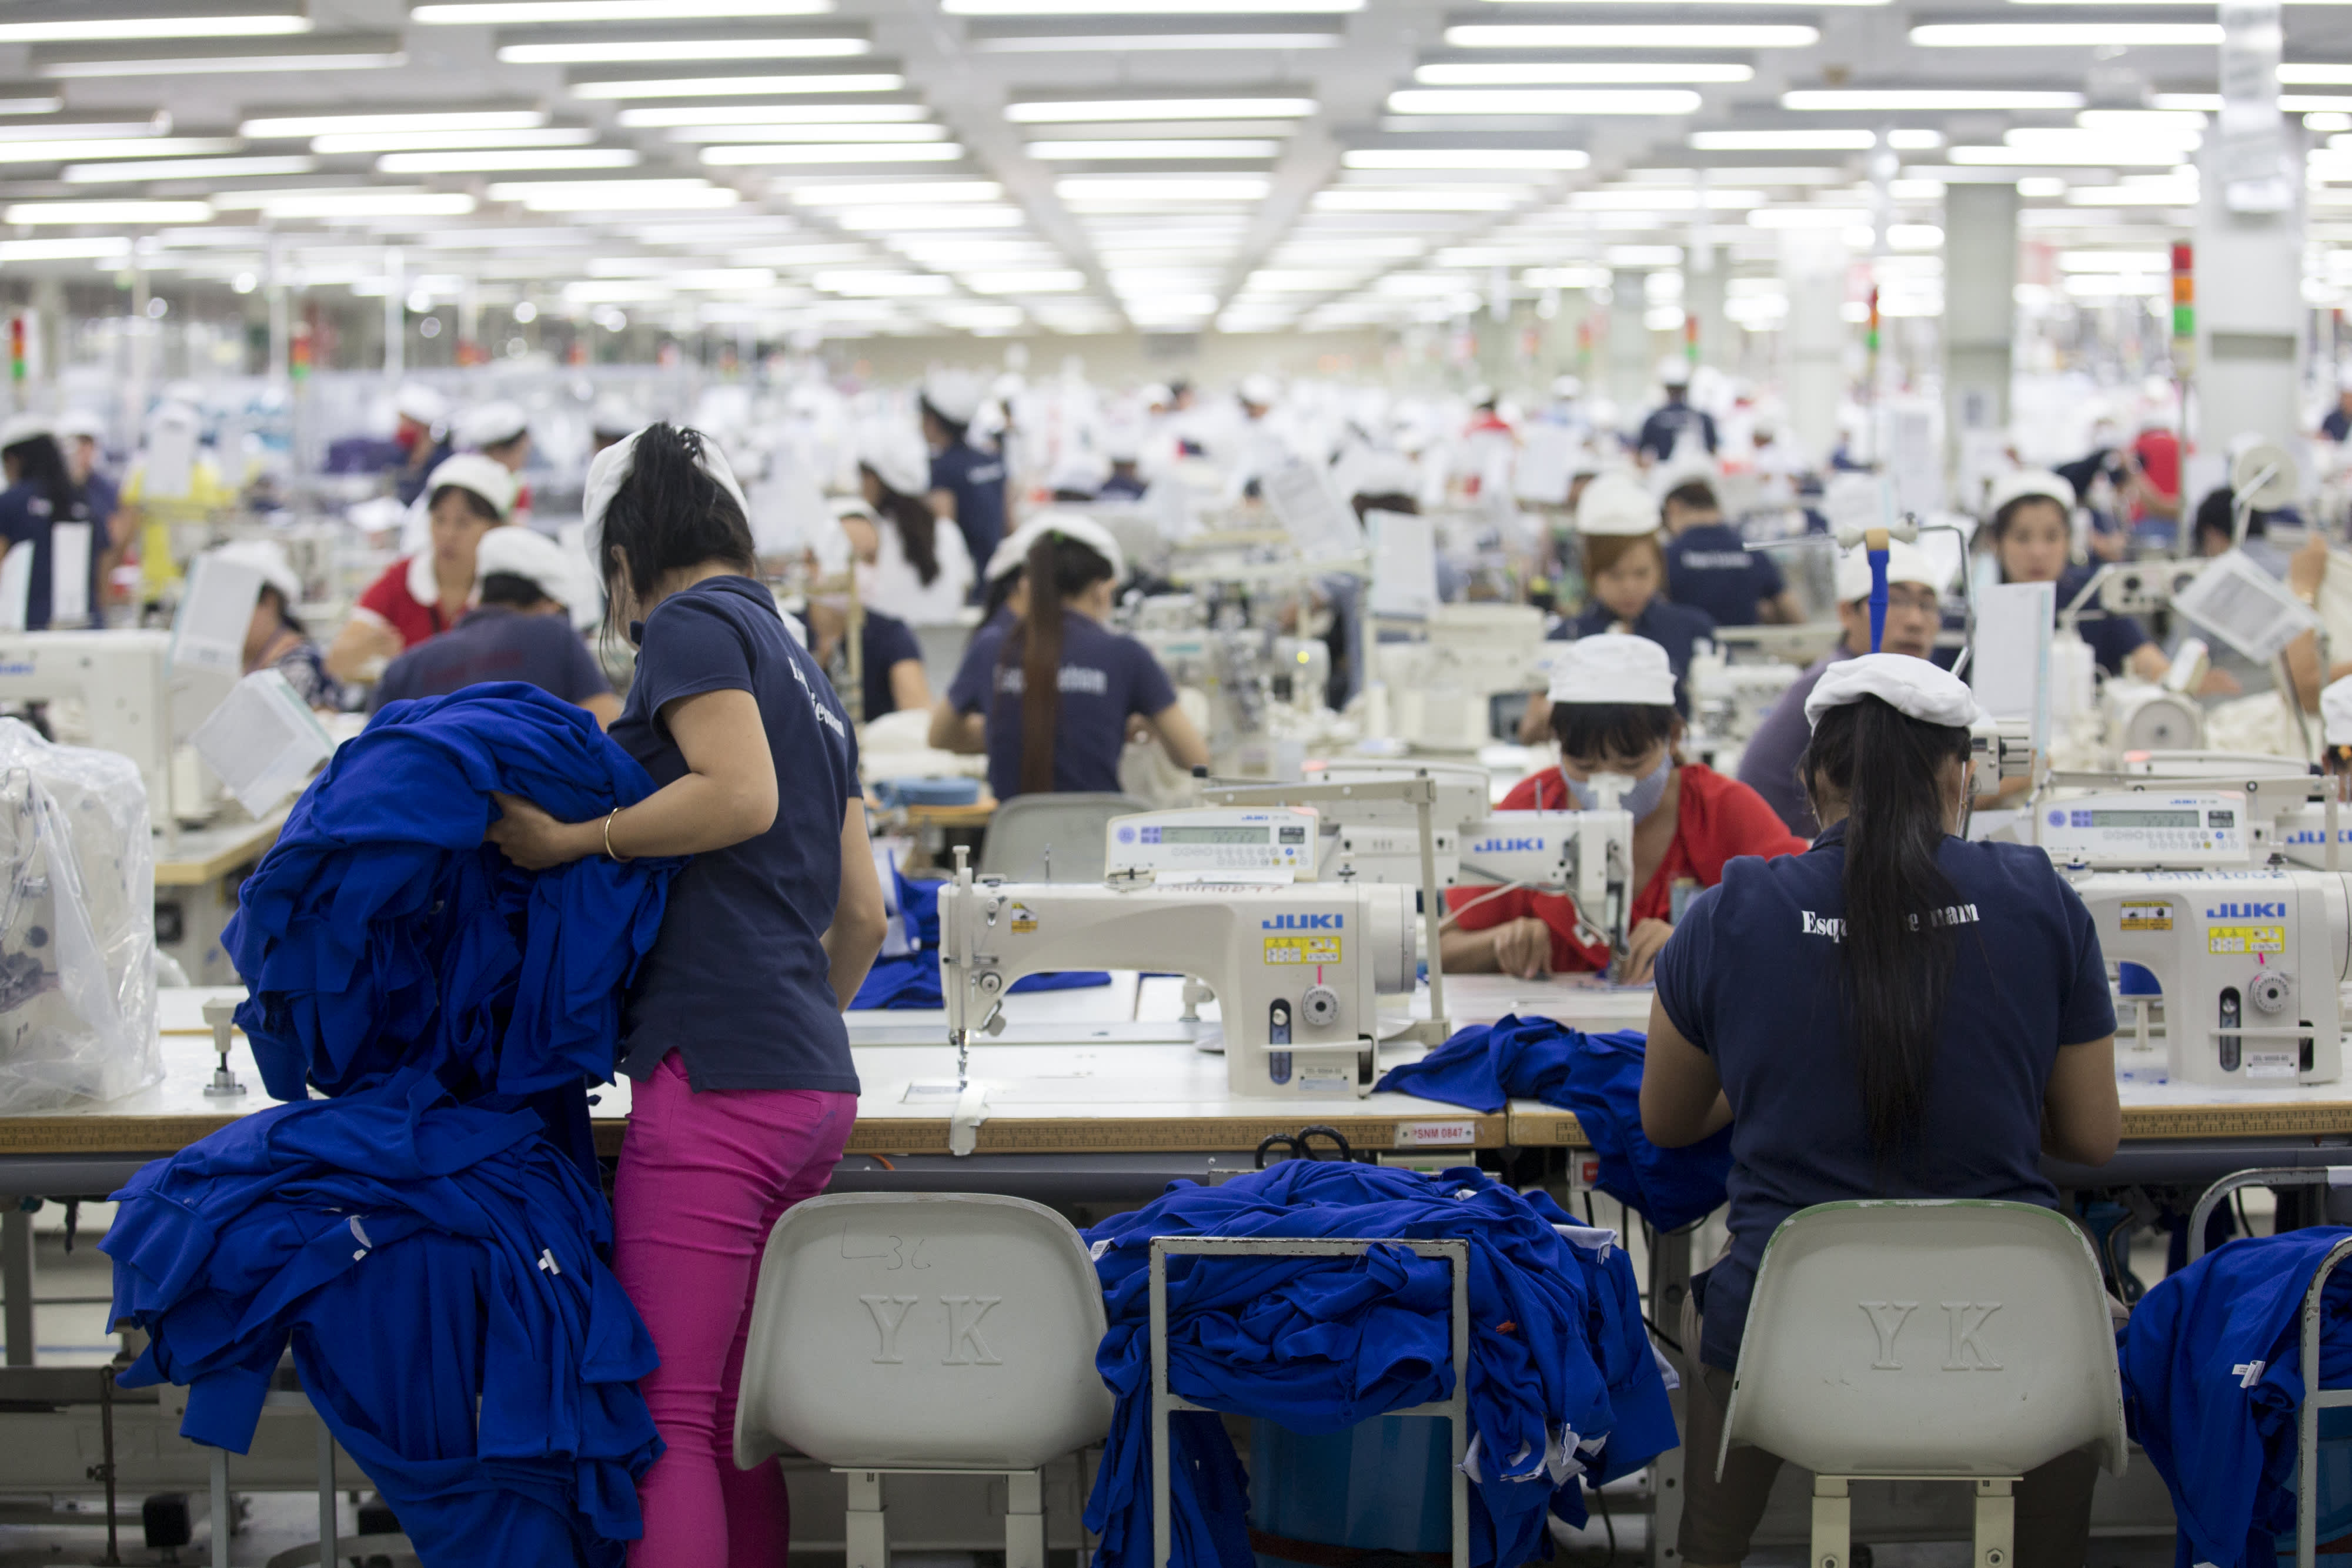 Workers sew clothing at the Esquel Group garment factory at the Vietnam-Singapore Industrial Park in Thuan An, Binh Duong province, Vietnam, in June 2014.